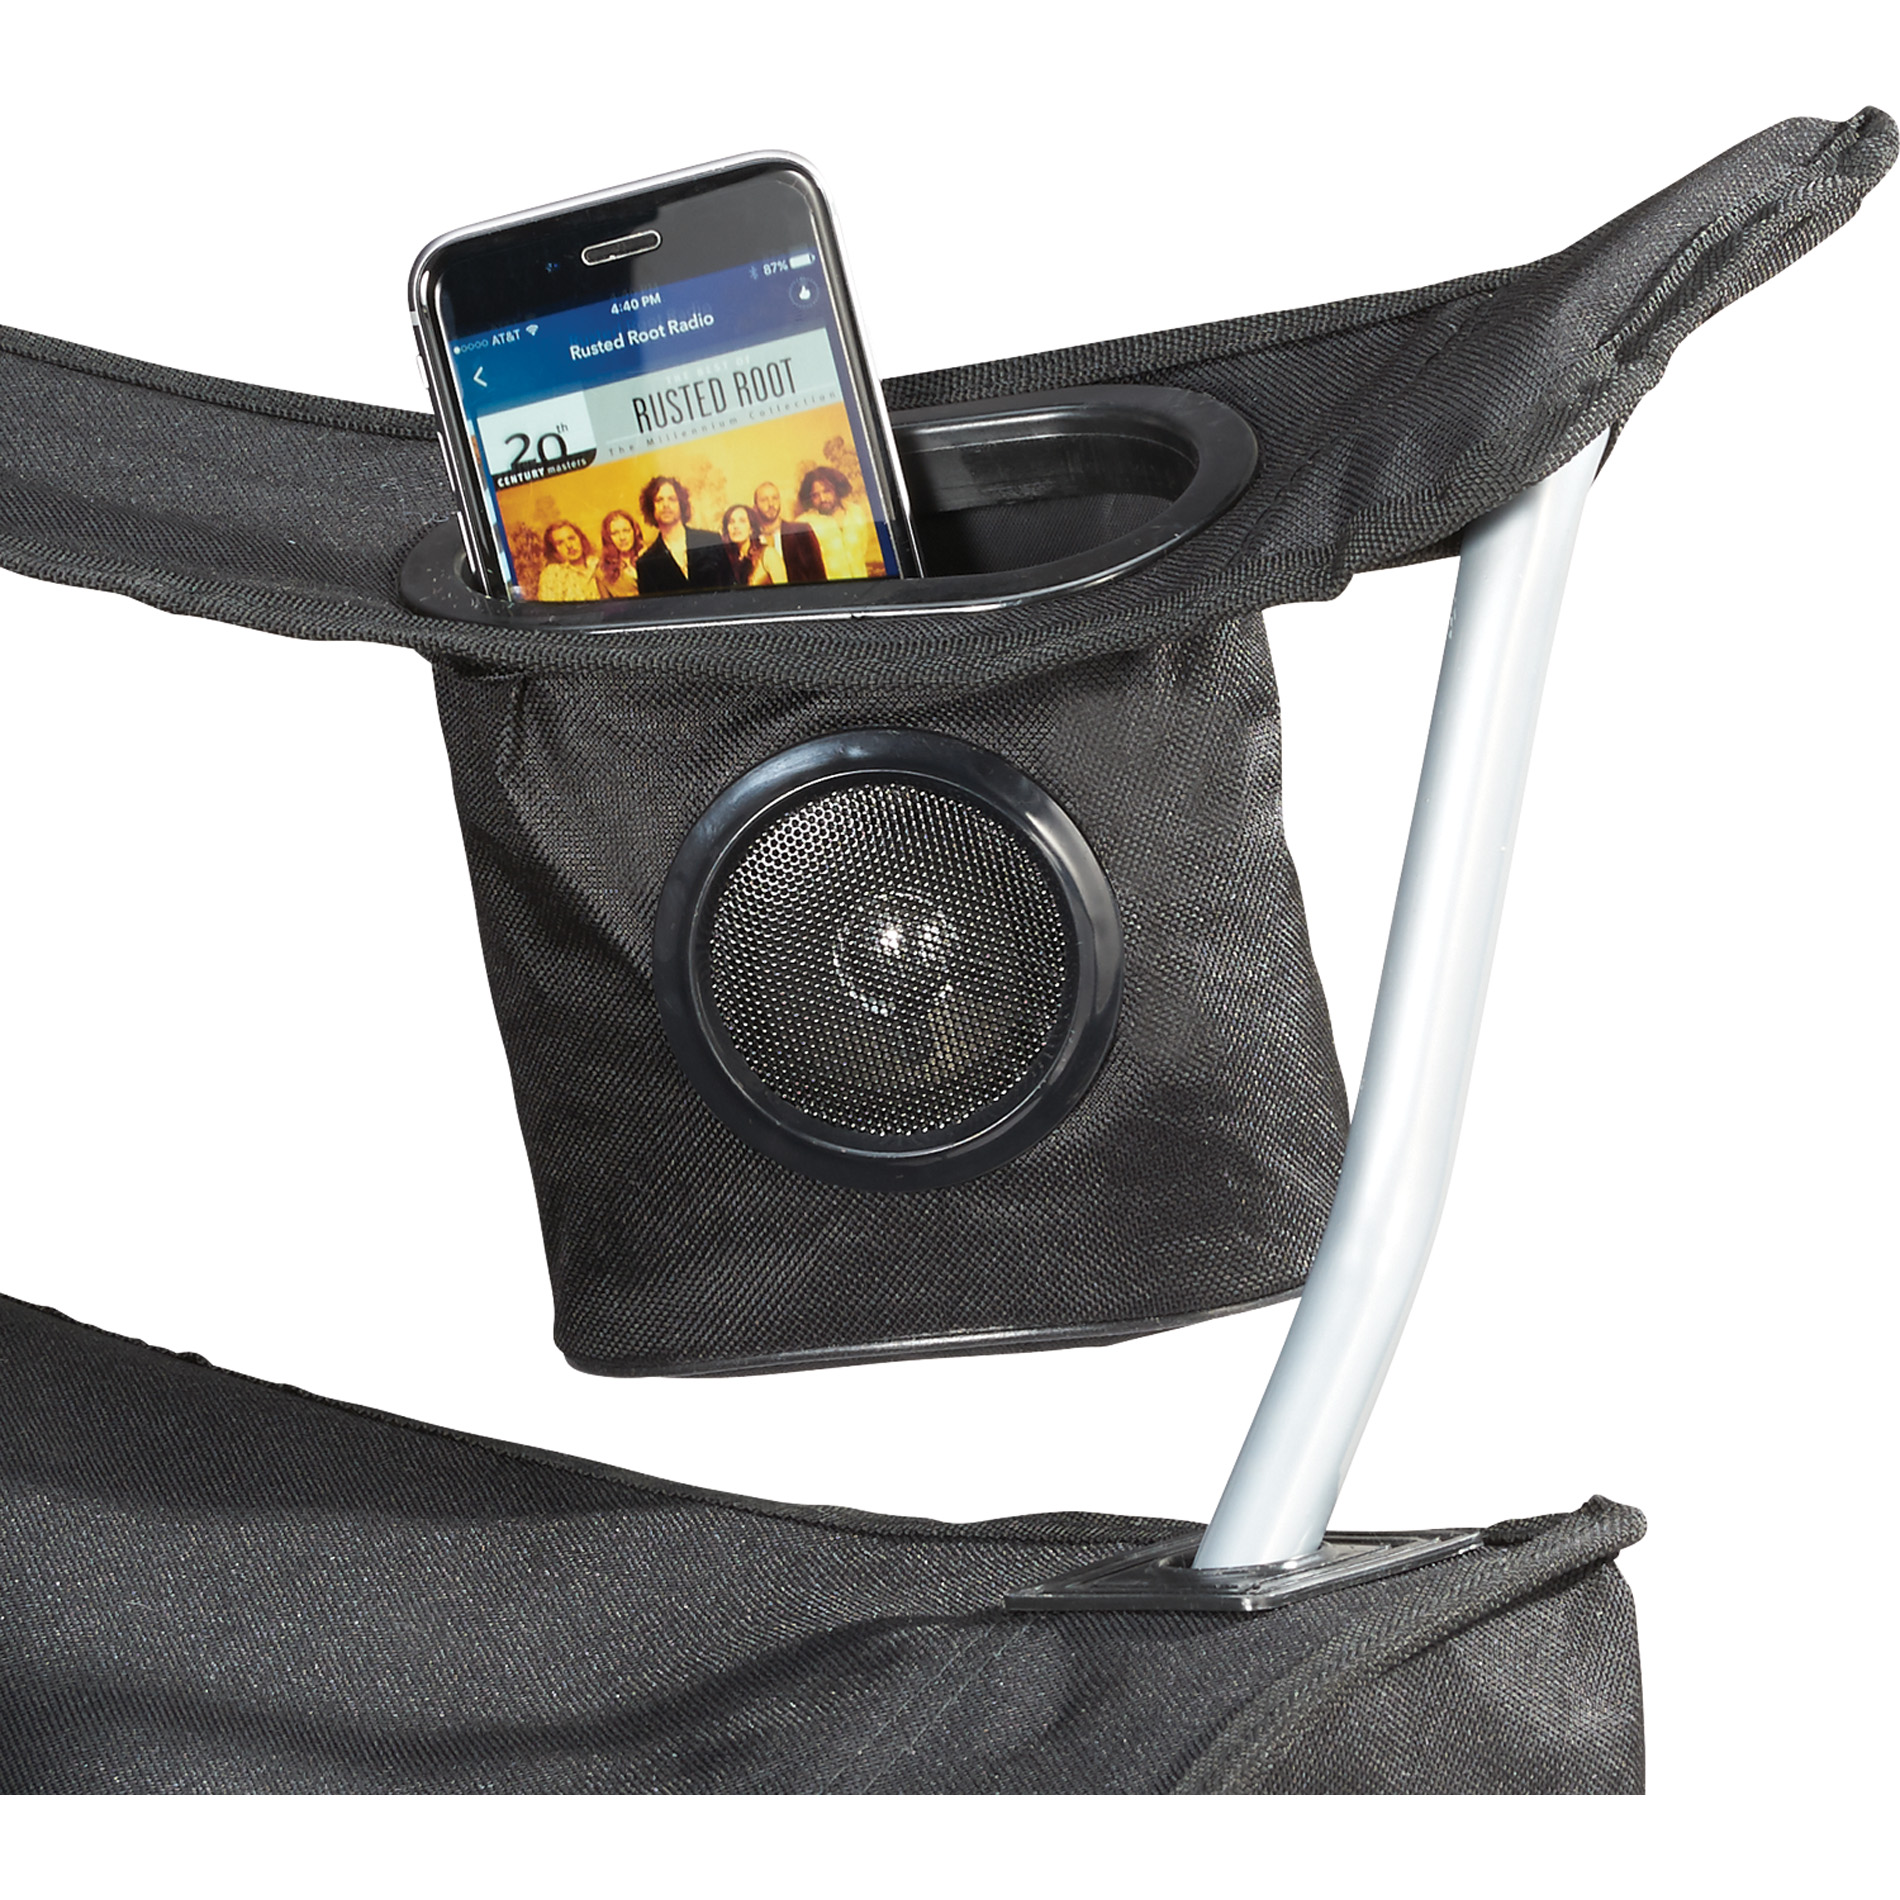 This Folding Chair With An Integrated Speaker Has Got To Be The Best Summer  Gadget! Itu0027s Ideal For Spending The Day On The Sidelines Or By The Grill.